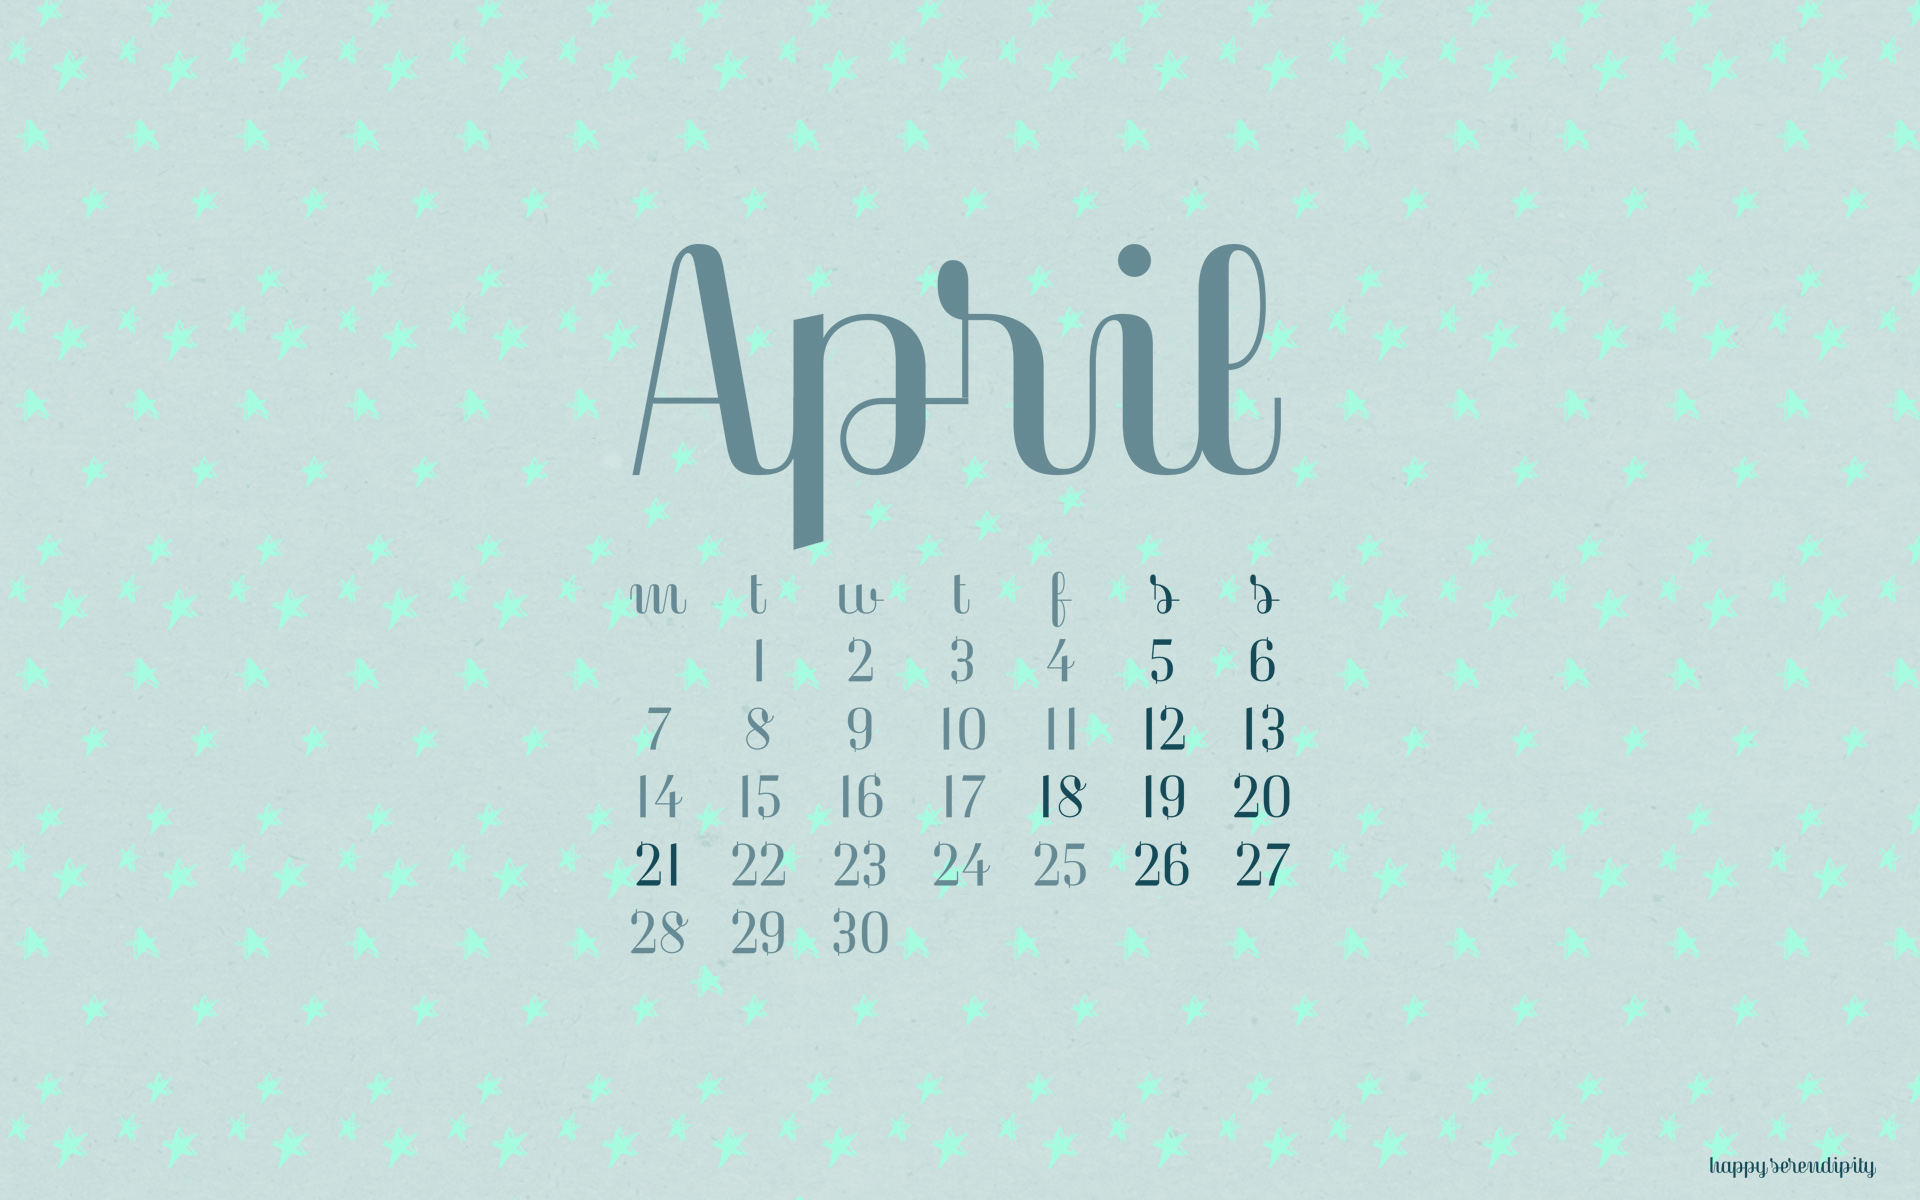 april 2014 desktop wallpaper